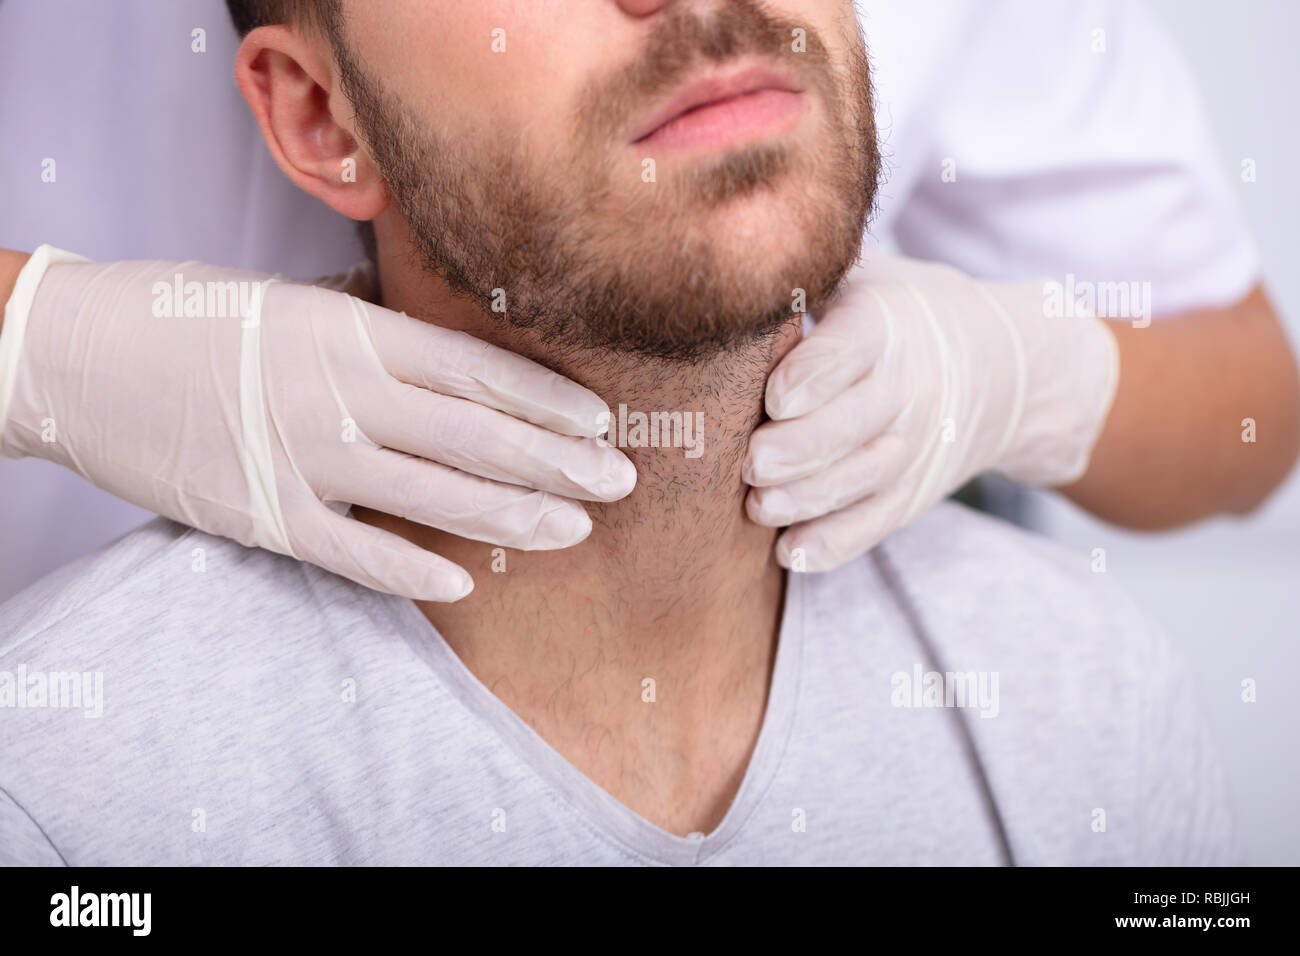 Doctor's Hand Wearing Gloves Performing Physical Exam Palpation Of The Thyroid Gland Stock Photo